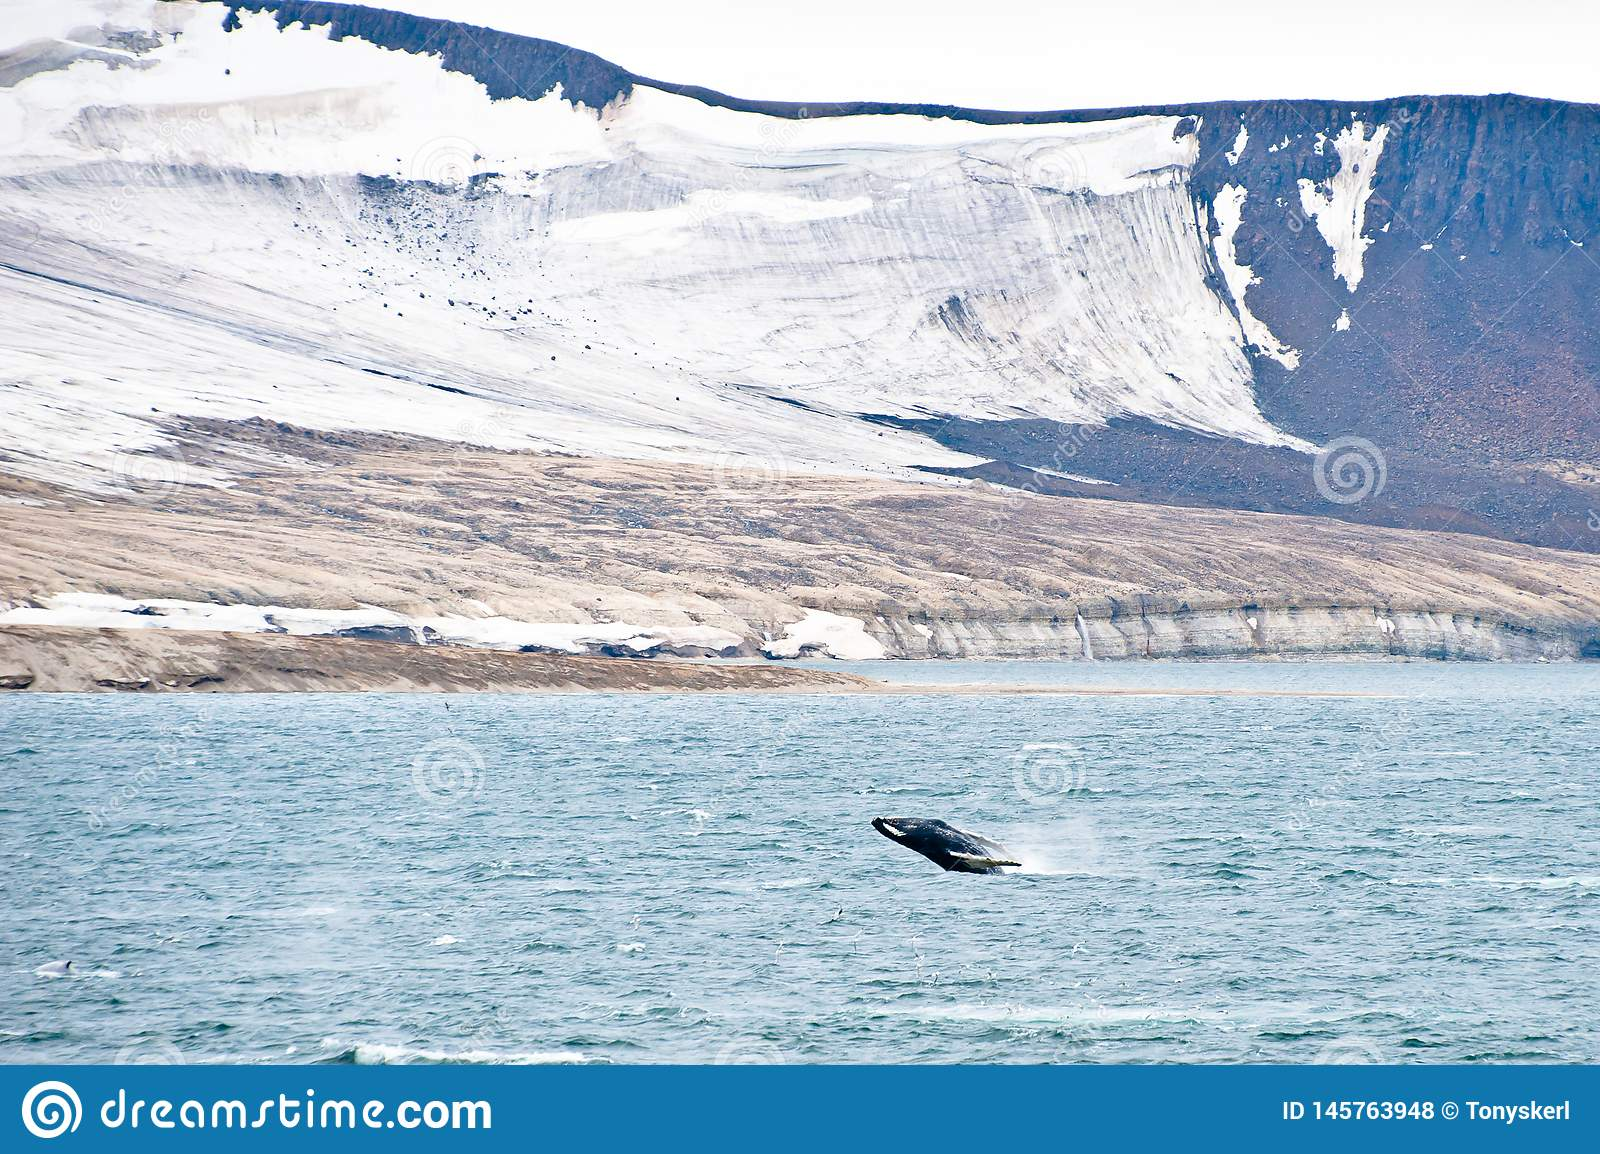 Northern Arctic landscape with breaching Humpback whale in foreground